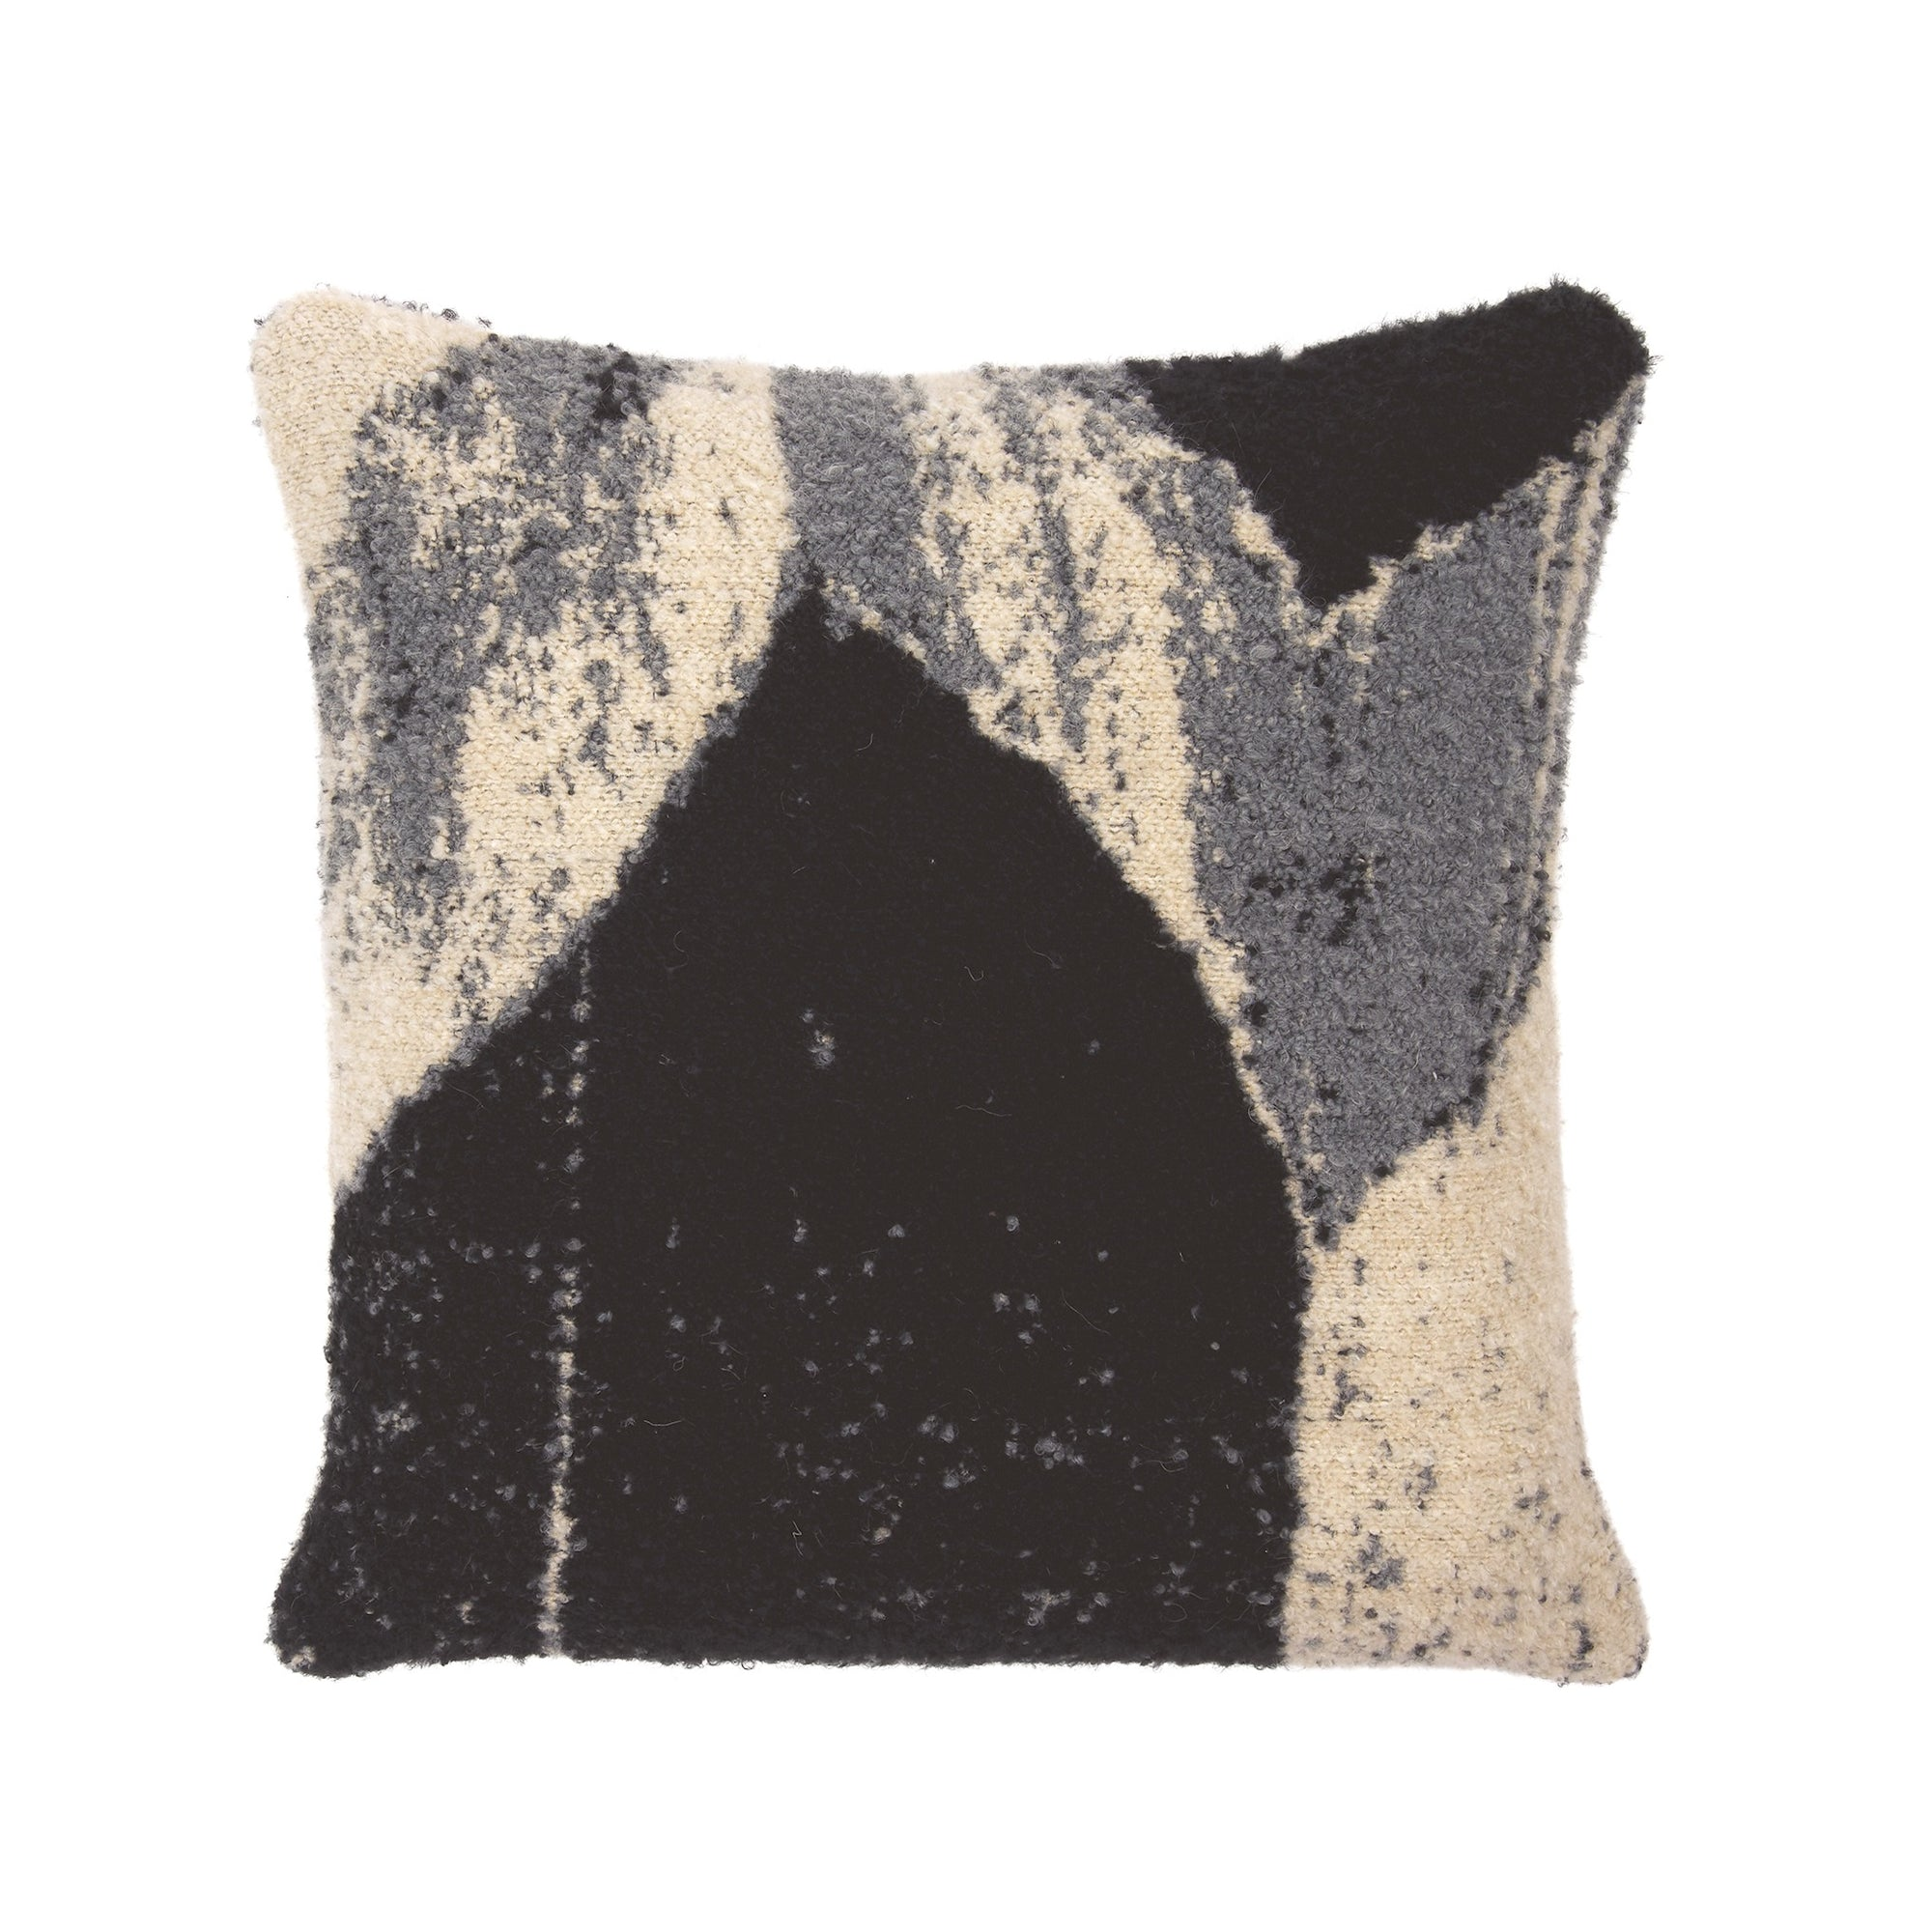 Nero Chevron cushion